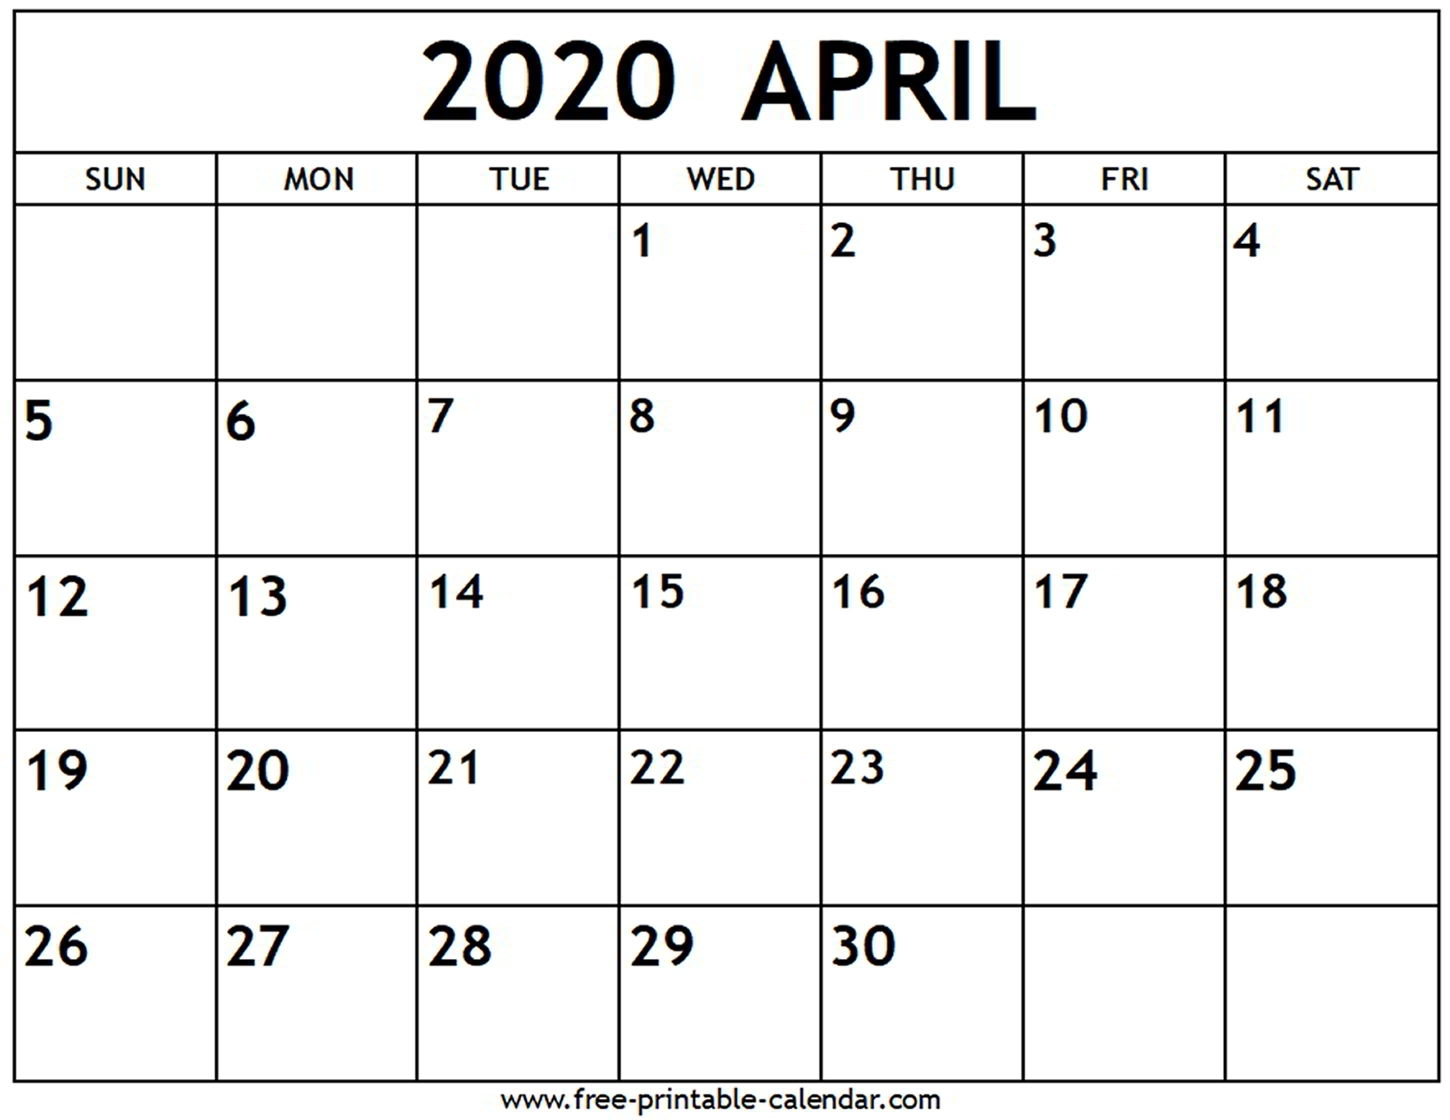 Free February March April 2020 Calendar